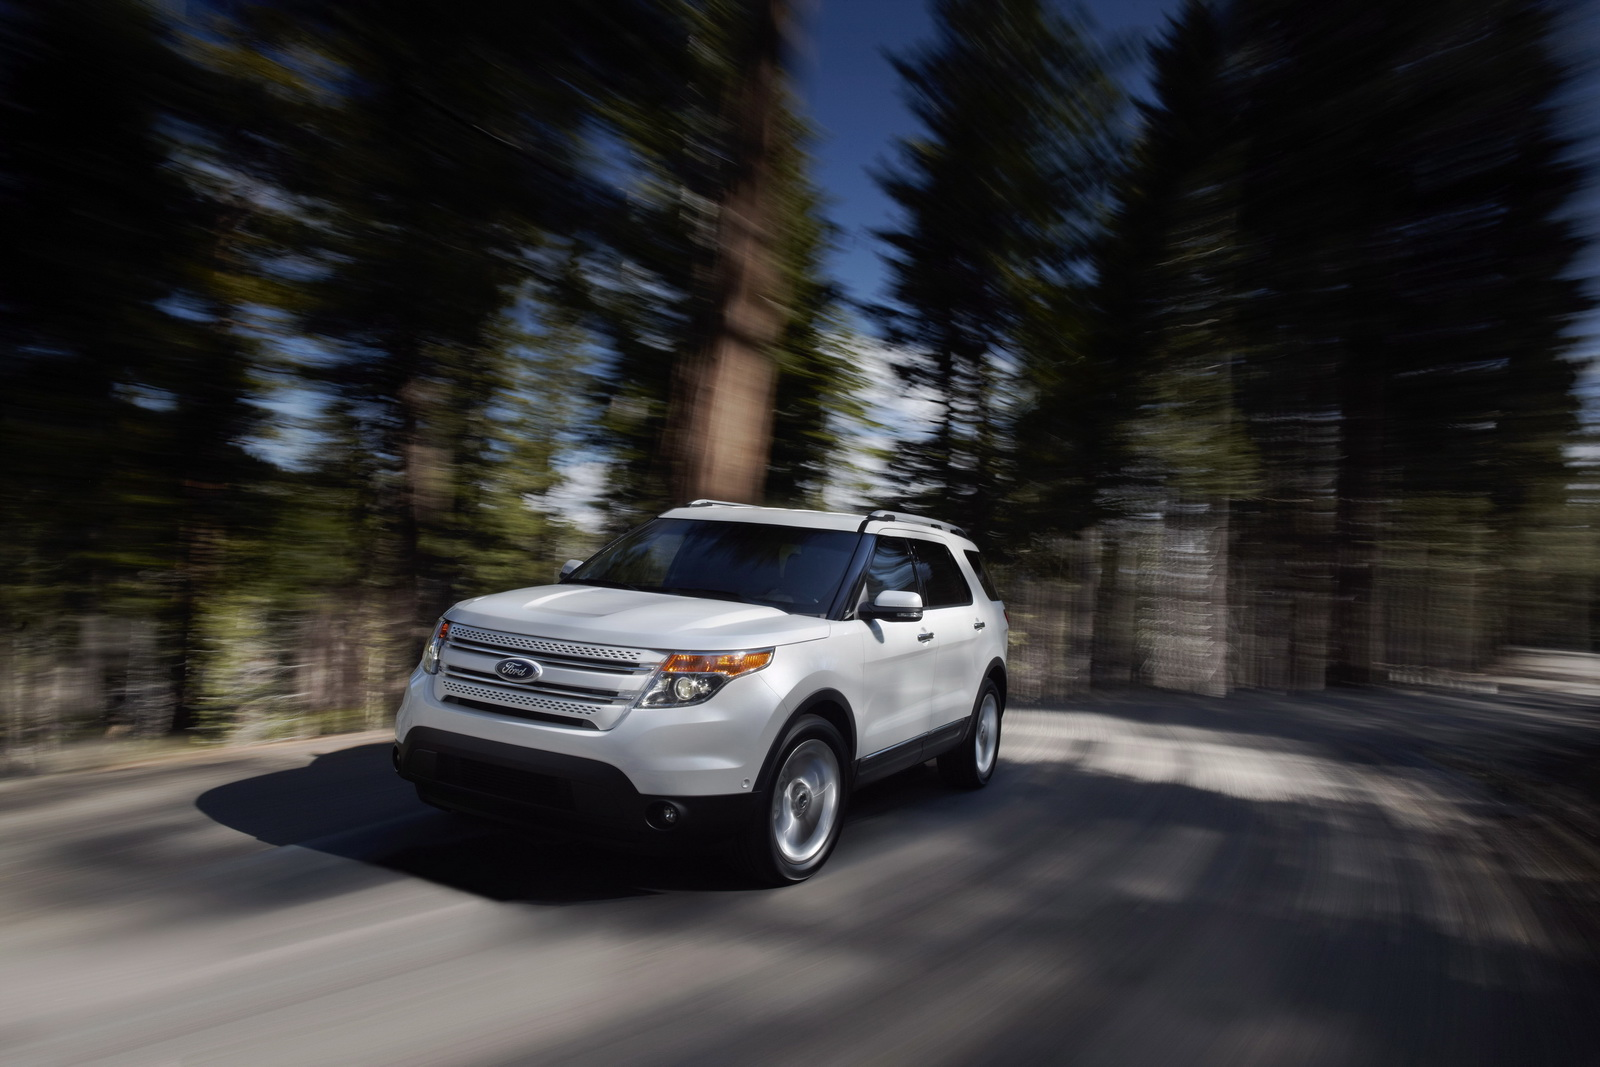 New Ford Explorer   New Standard for SUV Fuel Efficiency   Auto